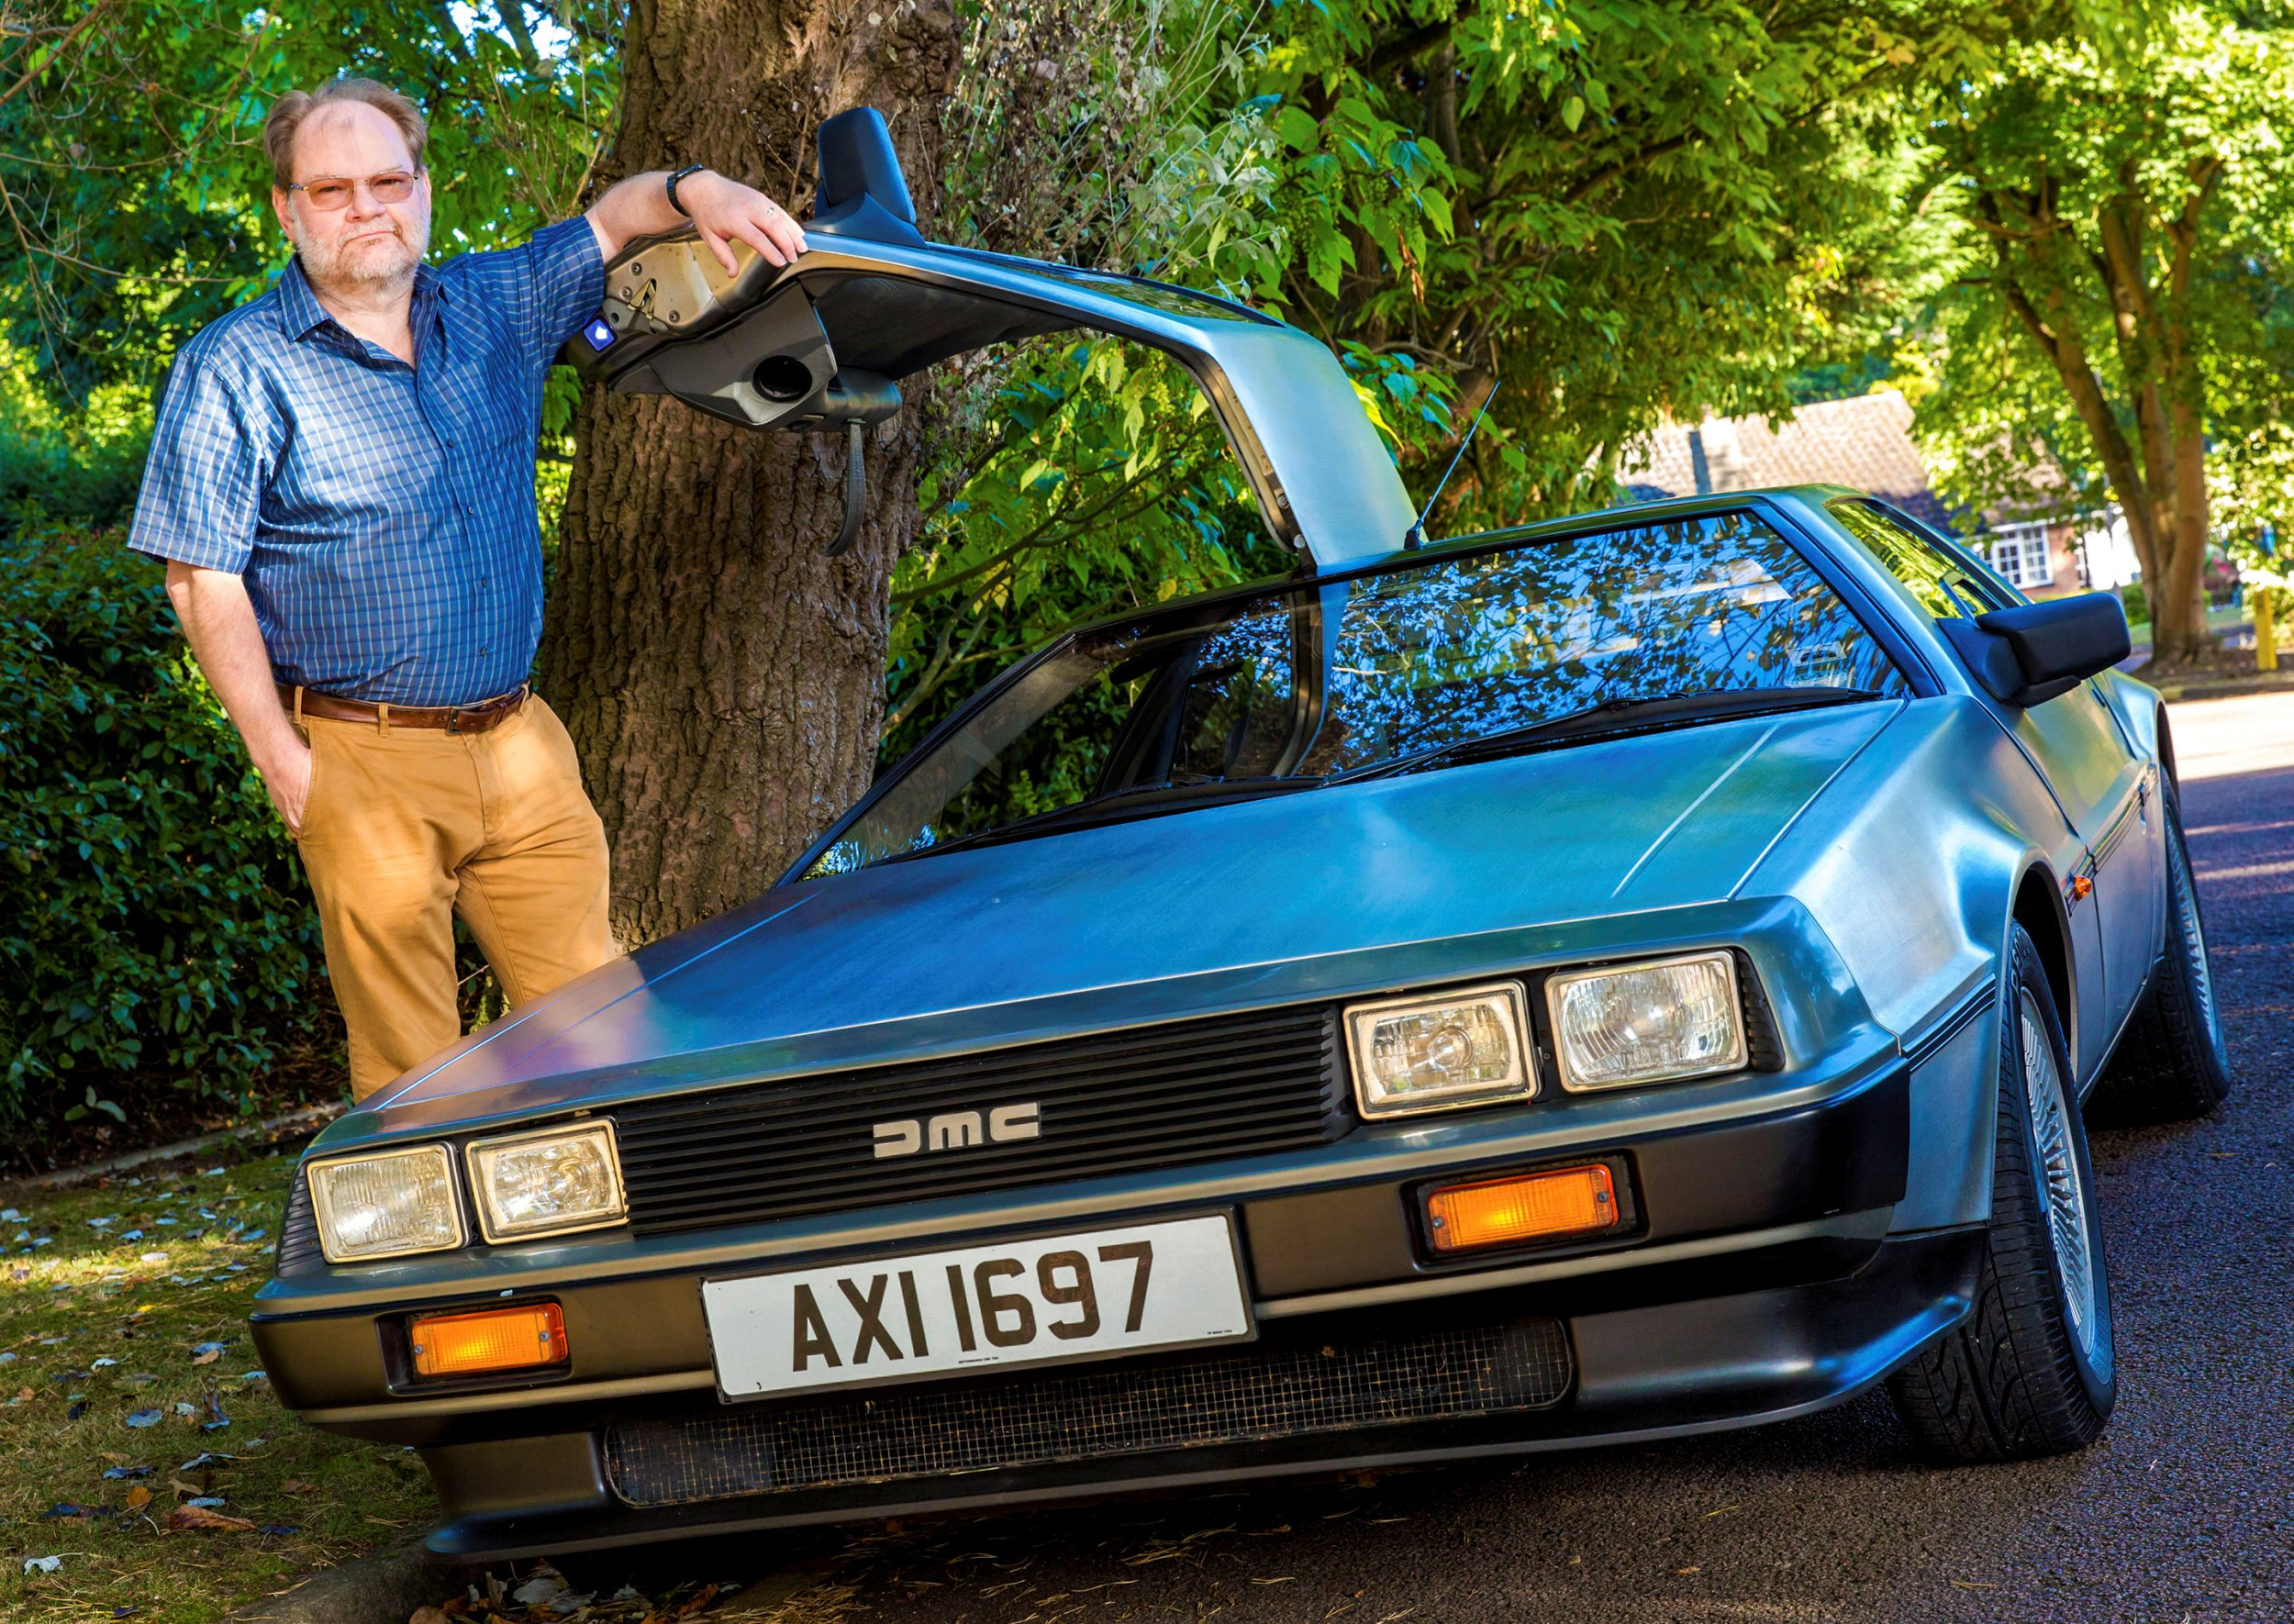 Man accused of driving at 88mph in a DeLorean